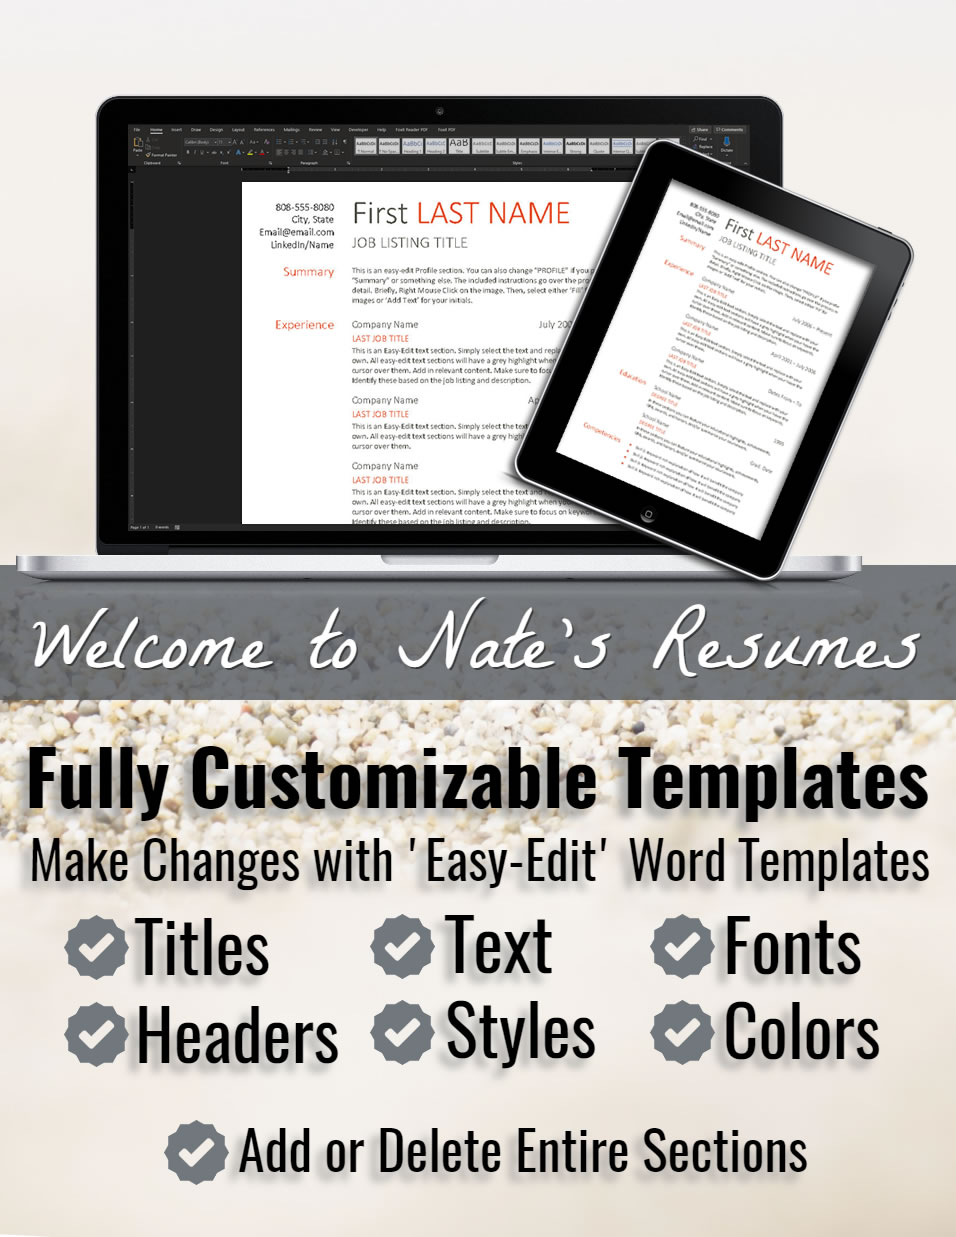 Clean Start - Make-Easy-Edits-to-Templates-LONG